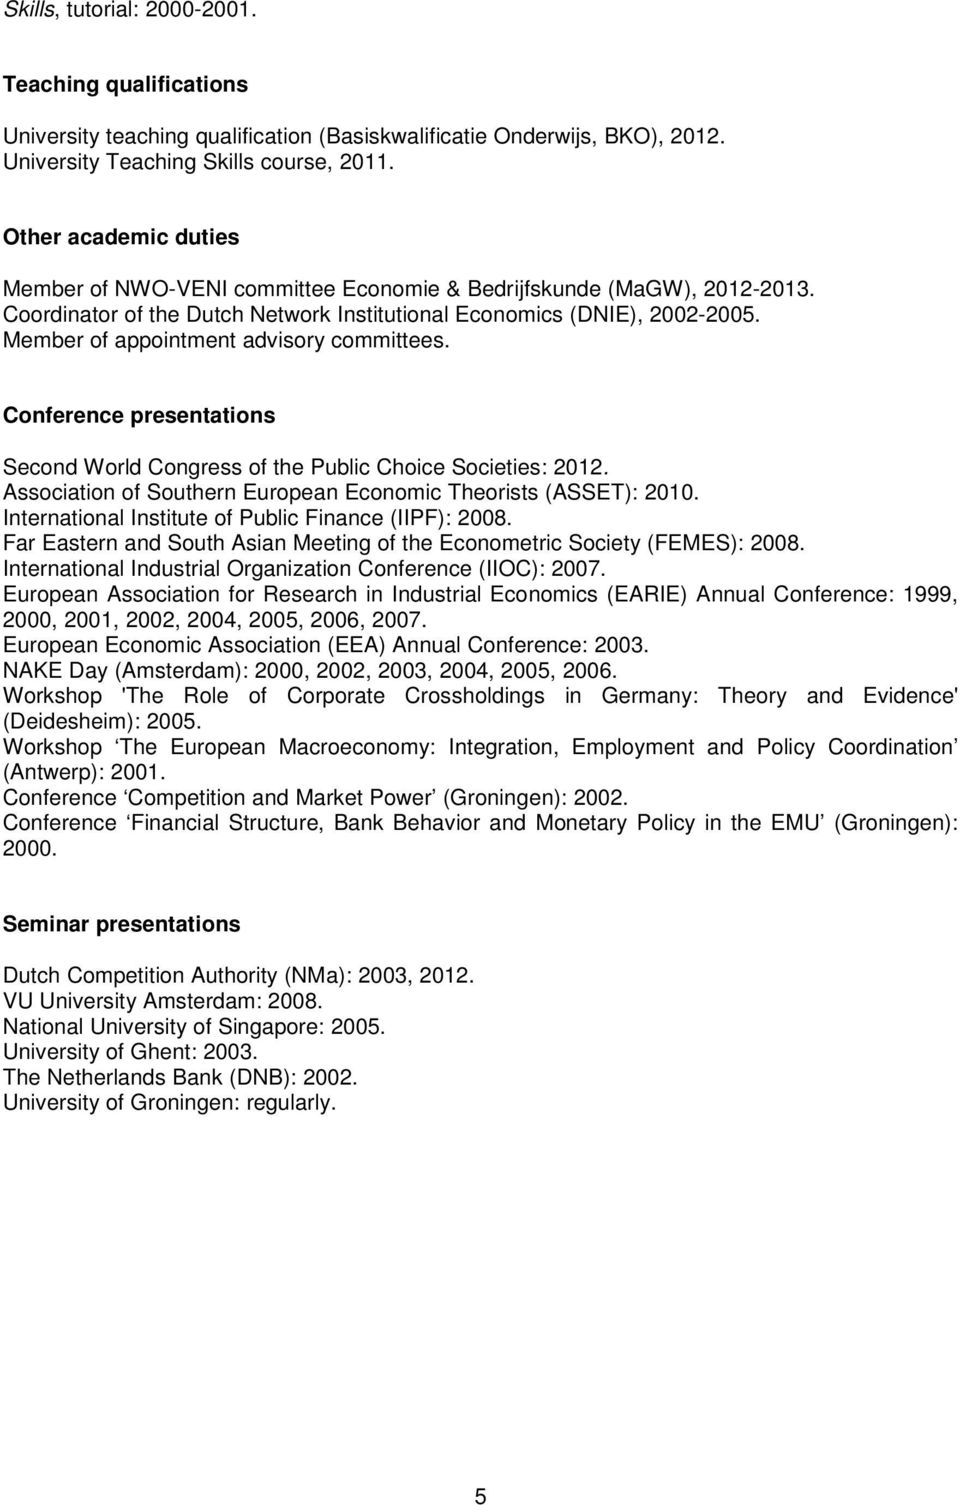 Member of appointment advisory committees. Conference presentations Second World Congress of the Public Choice Societies: 2012. Association of Southern European Economic Theorists (ASSET): 2010.